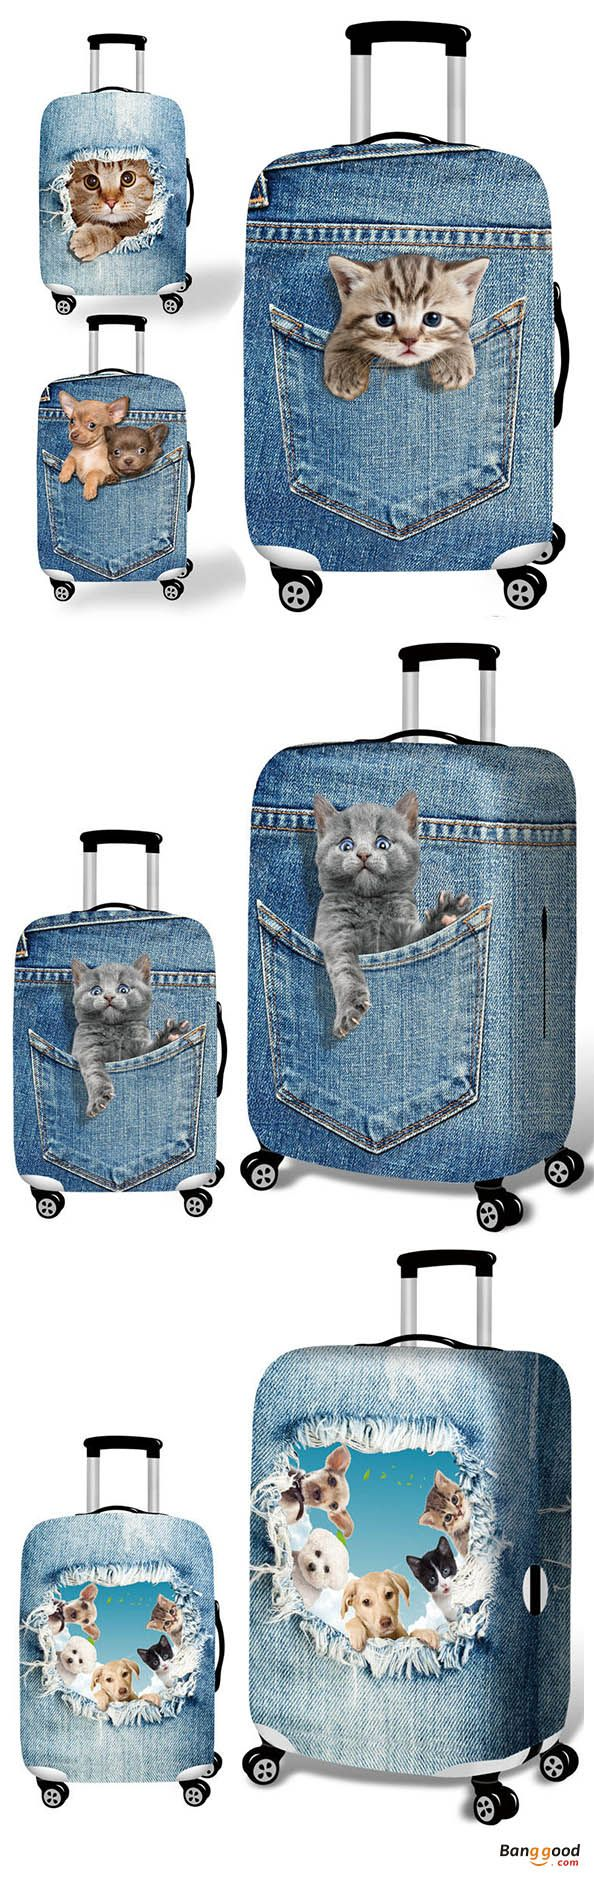 Honana Denim 3D Cute Cat Dog Elastic Luggage Cover Trolley Case Cover Durable Suitcase Protector for 18-32 Inch Case Warm Travel Accessories. 3D Cute Cat Dog, denim cover, a special suitcase. Shop now!